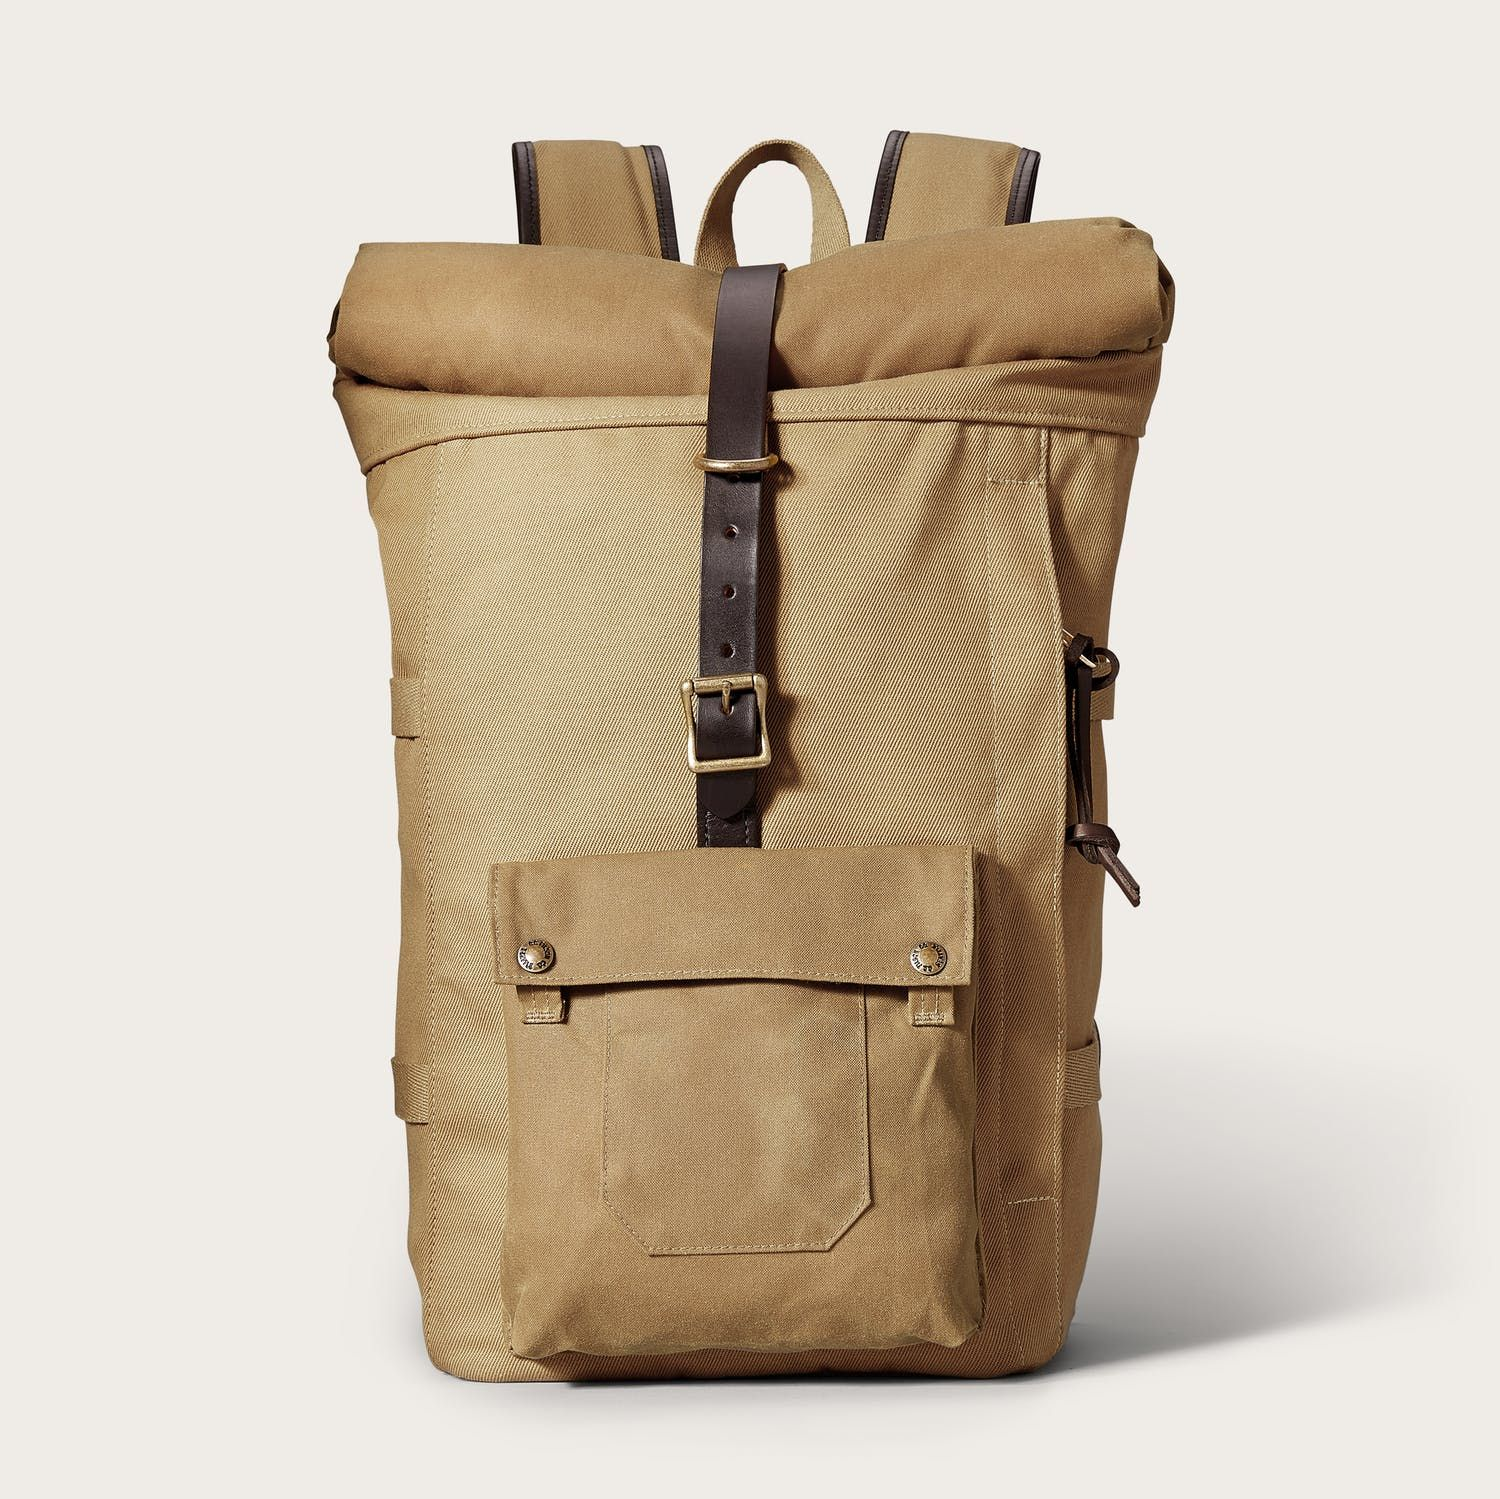 Roll Top Backpack Filson